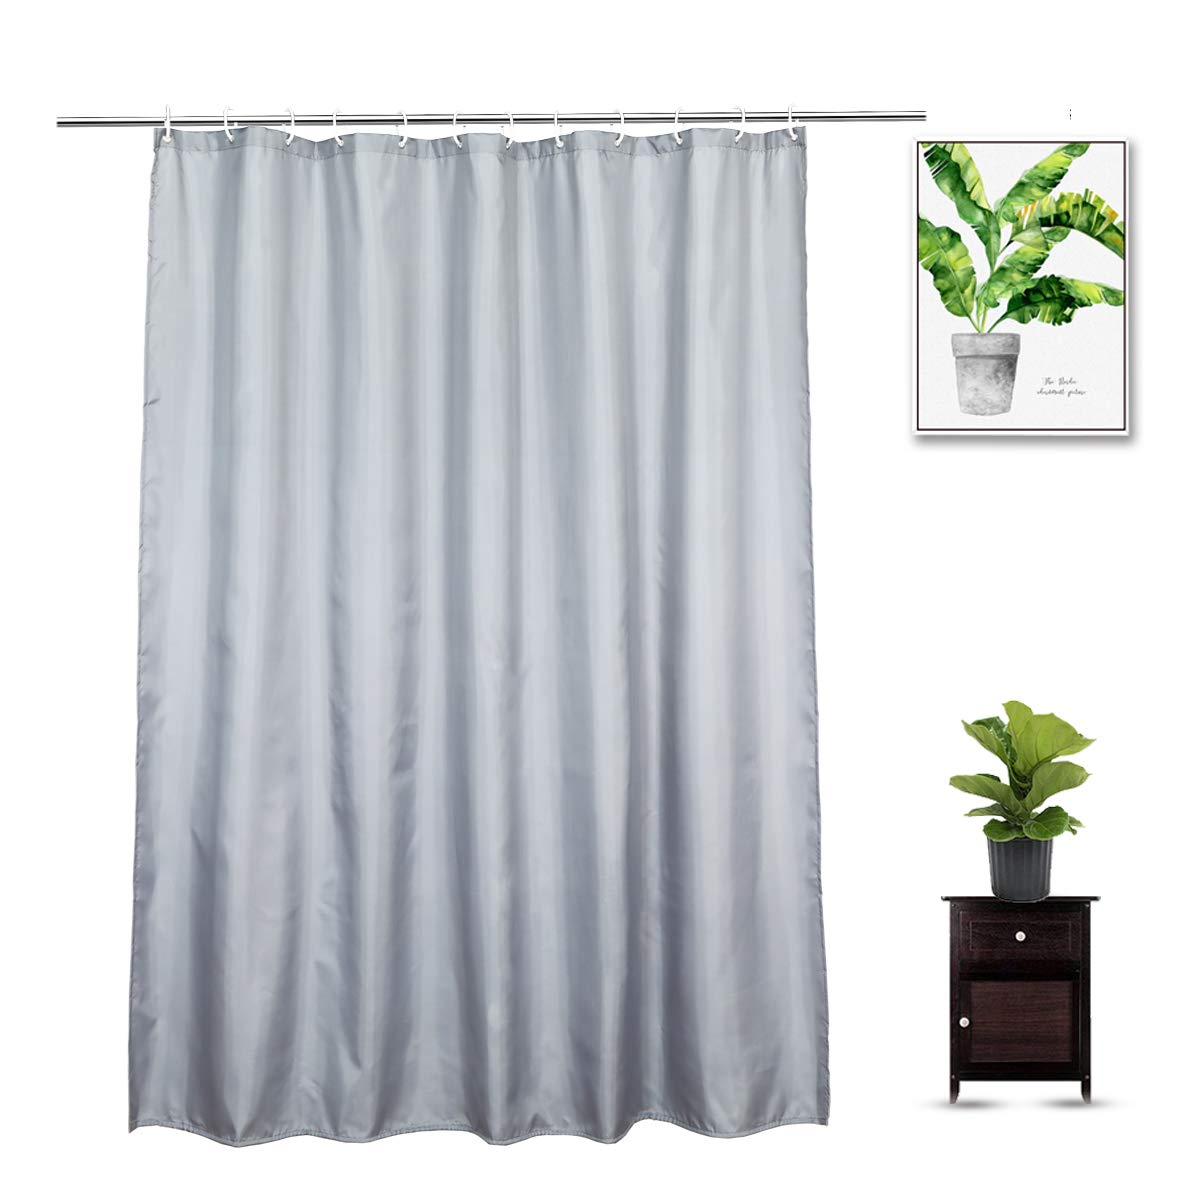 Gray Shower Curtain Liner 72 x 78 Inch, Luxury Water Repellent Washable Cloth Extra Long Shower Curtains with 12 Rust-Proof Metal Grommets, Hotel Quality, Light Gray